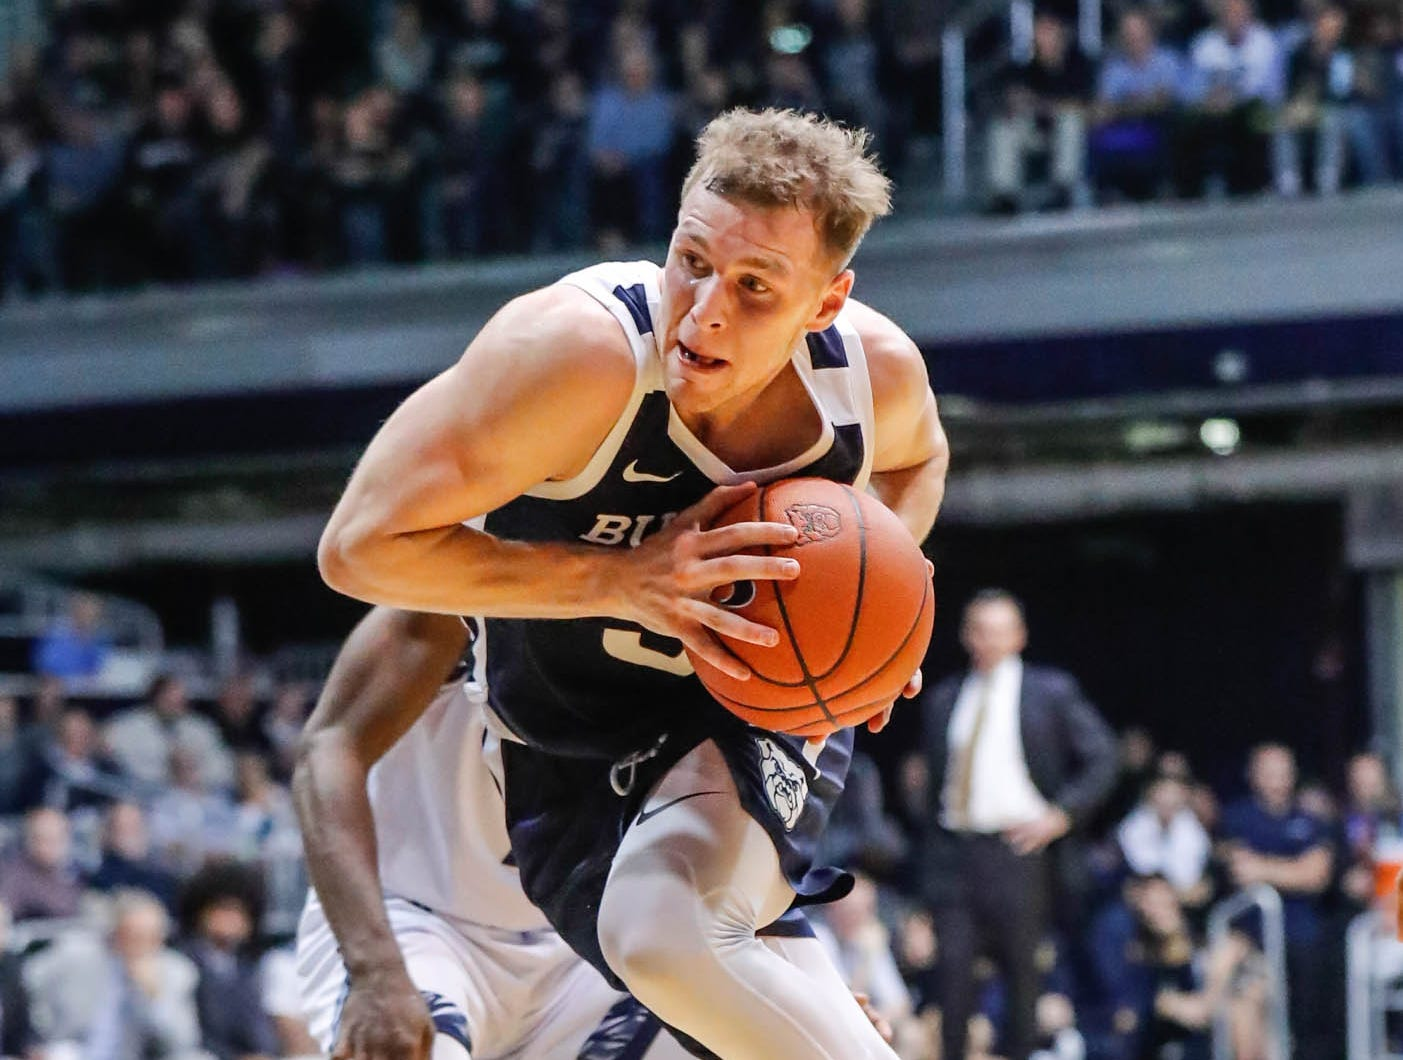 Butler University's guard Paul Jorgensen (5) drives in for a layup during a game between Butler University and UC Irvine, at Hinkle Fieldhouse on Friday, Dec. 21, 2018.